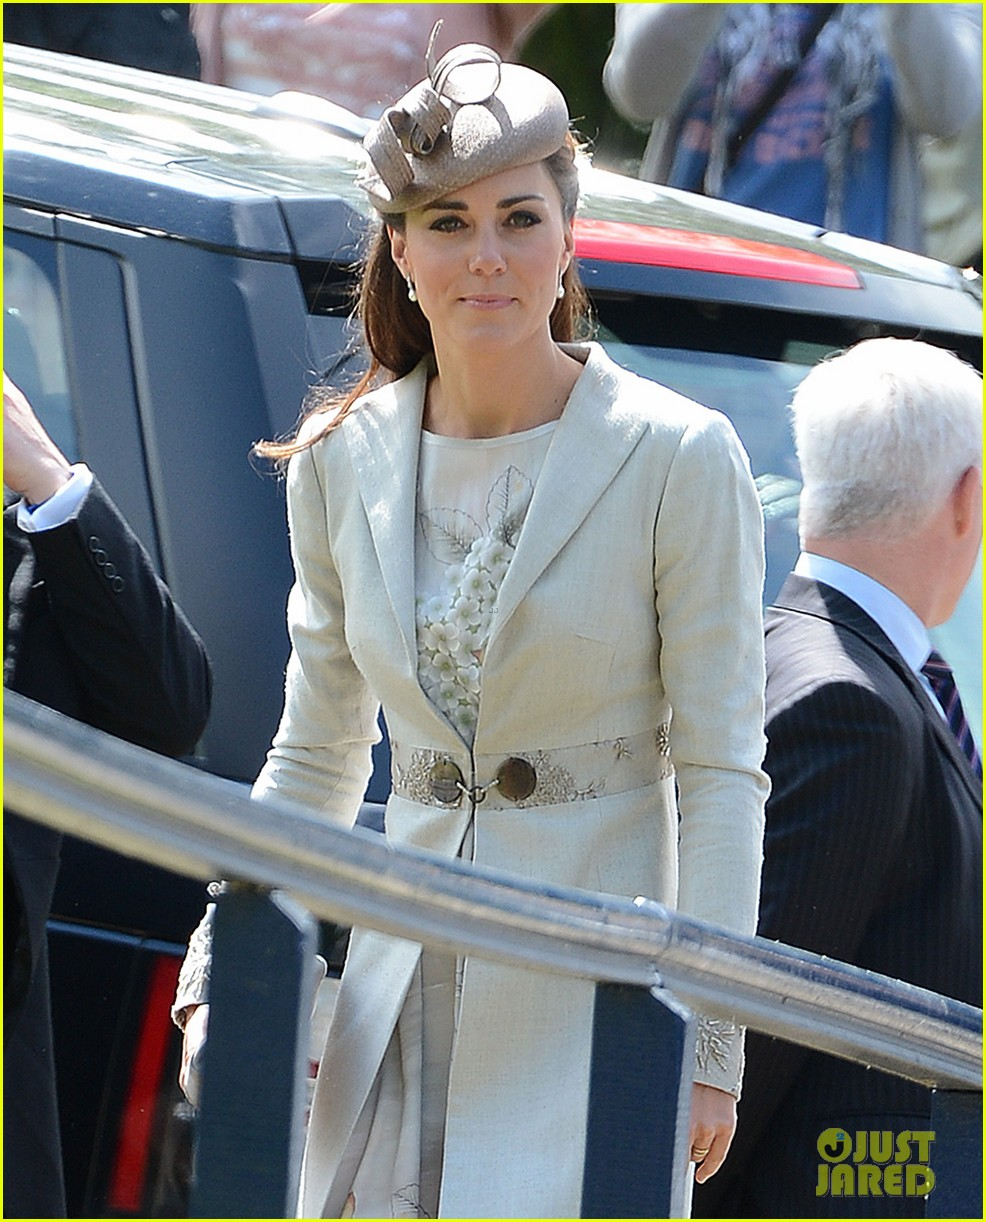 william kate wedding 03